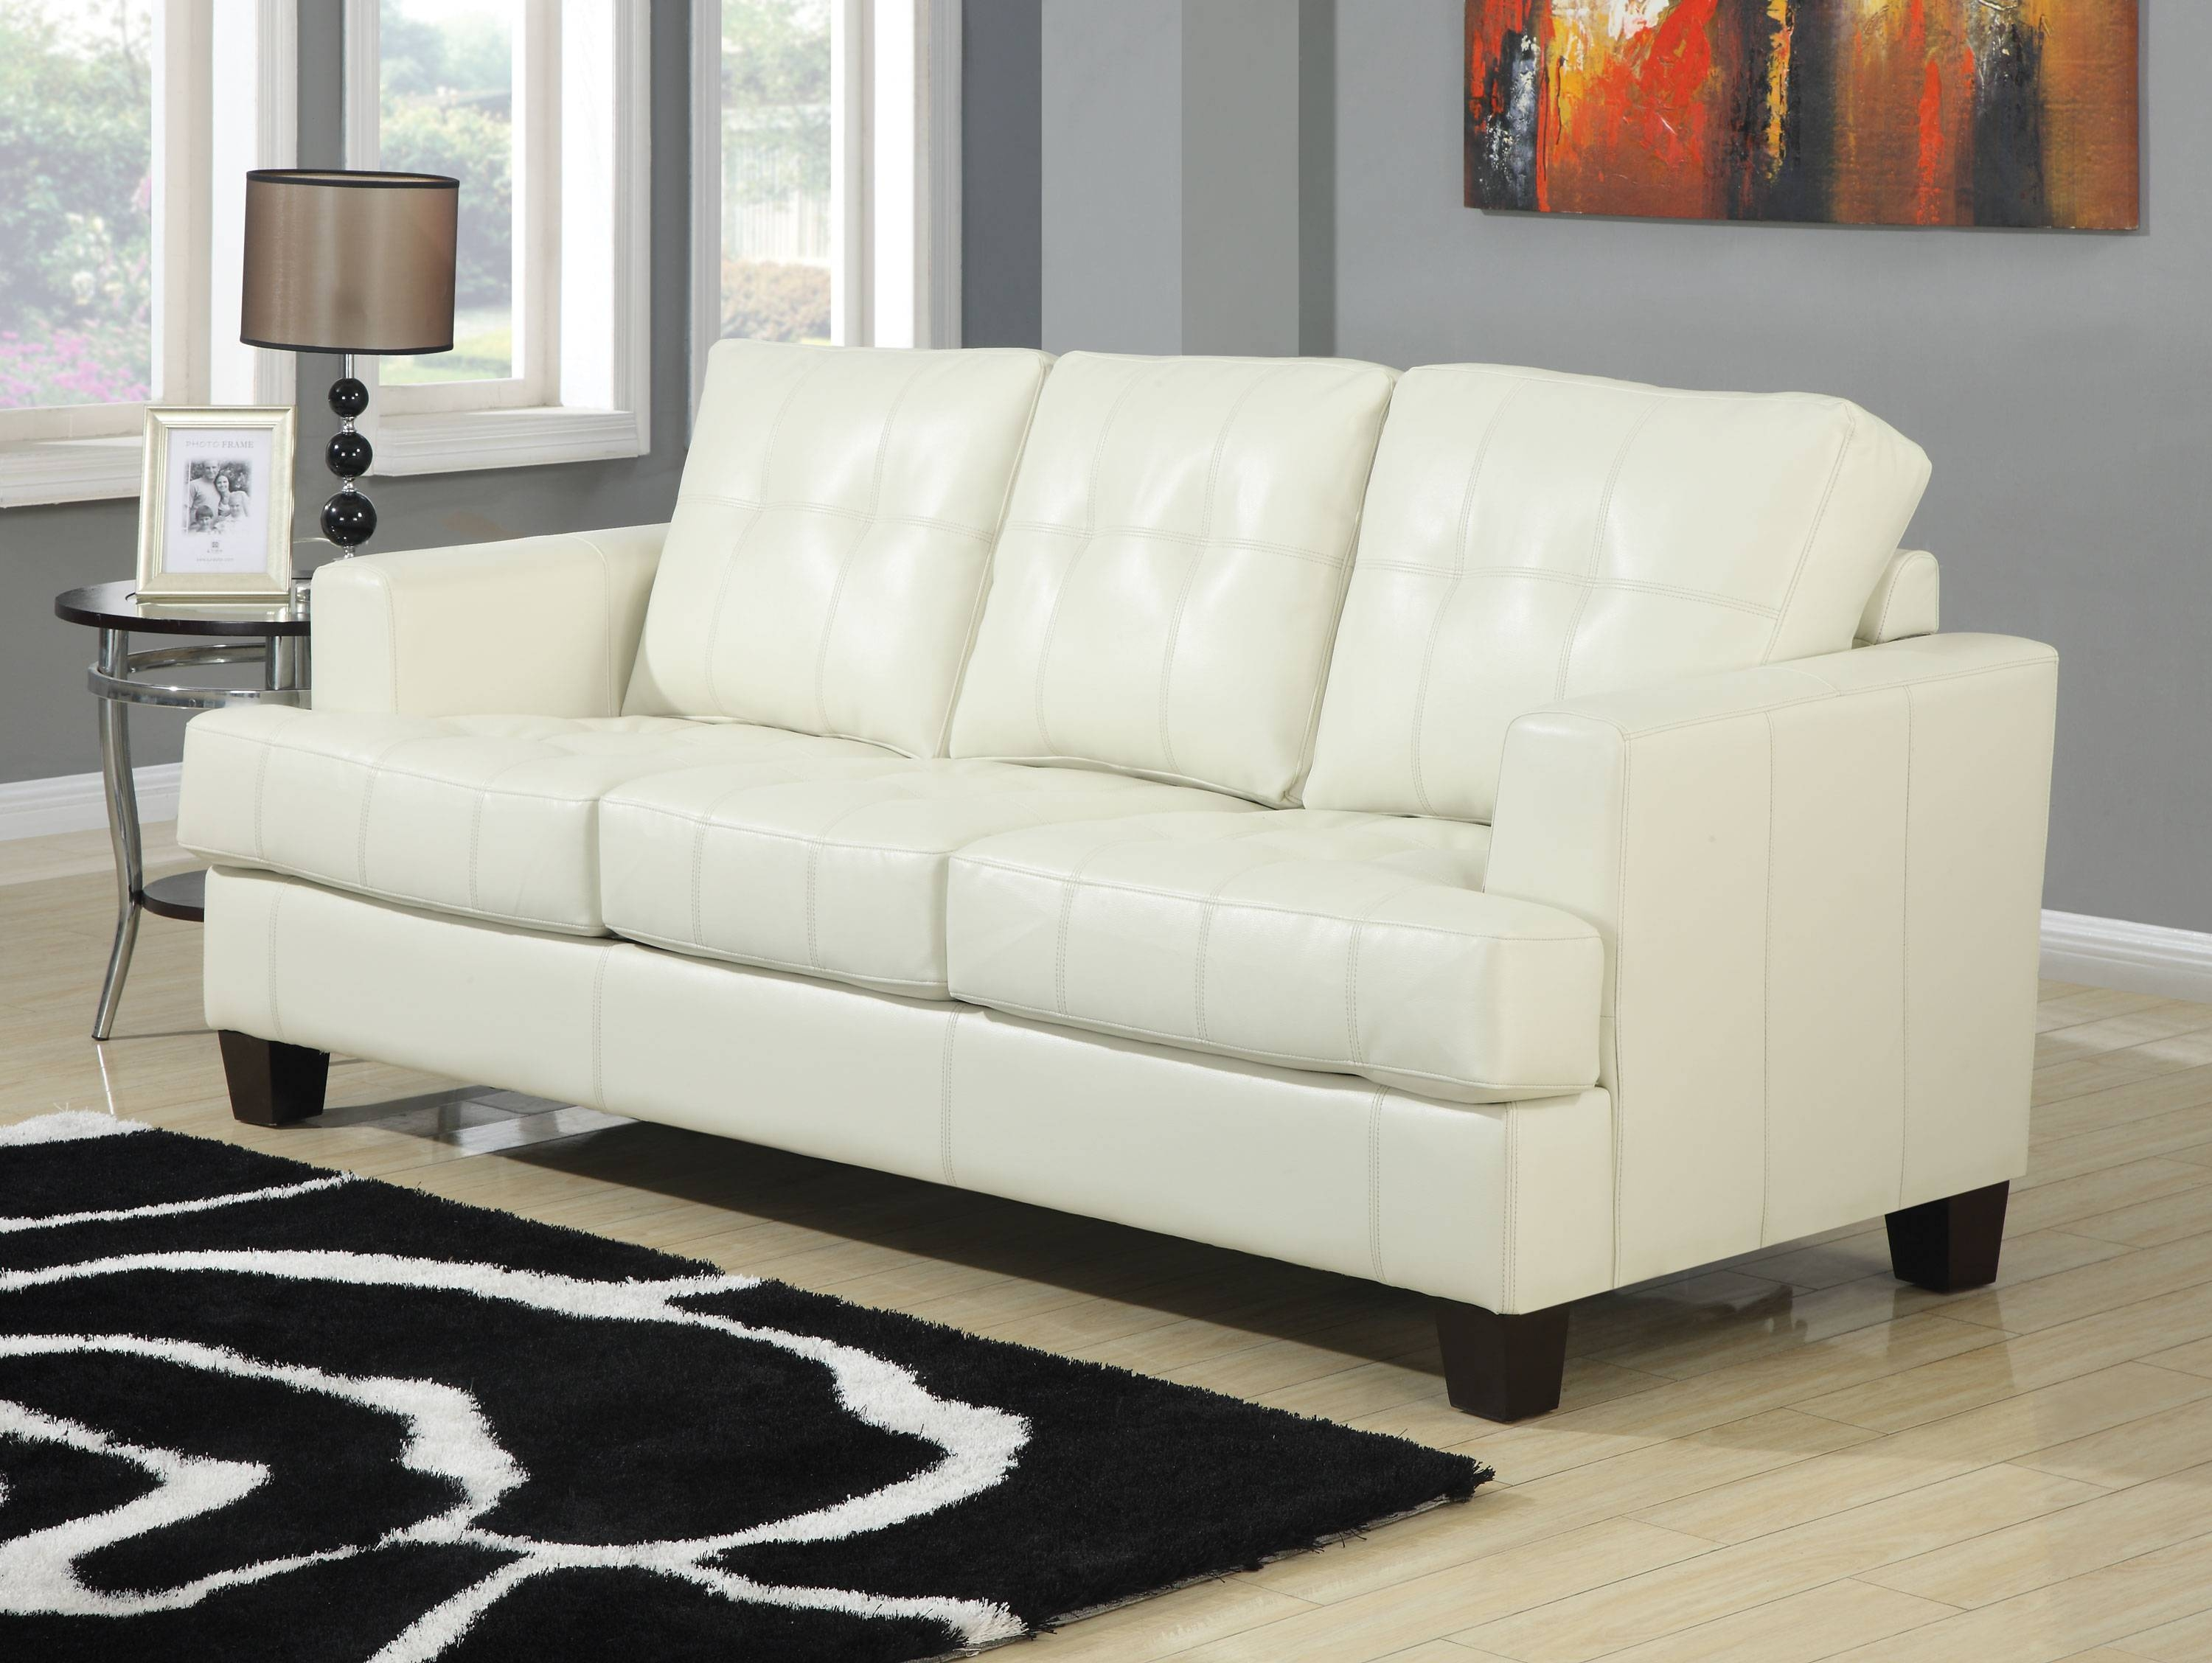 Sofa. Outstanding Light Tan Leather Couch 2017 Design Sofa Cleaner with regard to Cream Colored Sofas (Image 19 of 30)